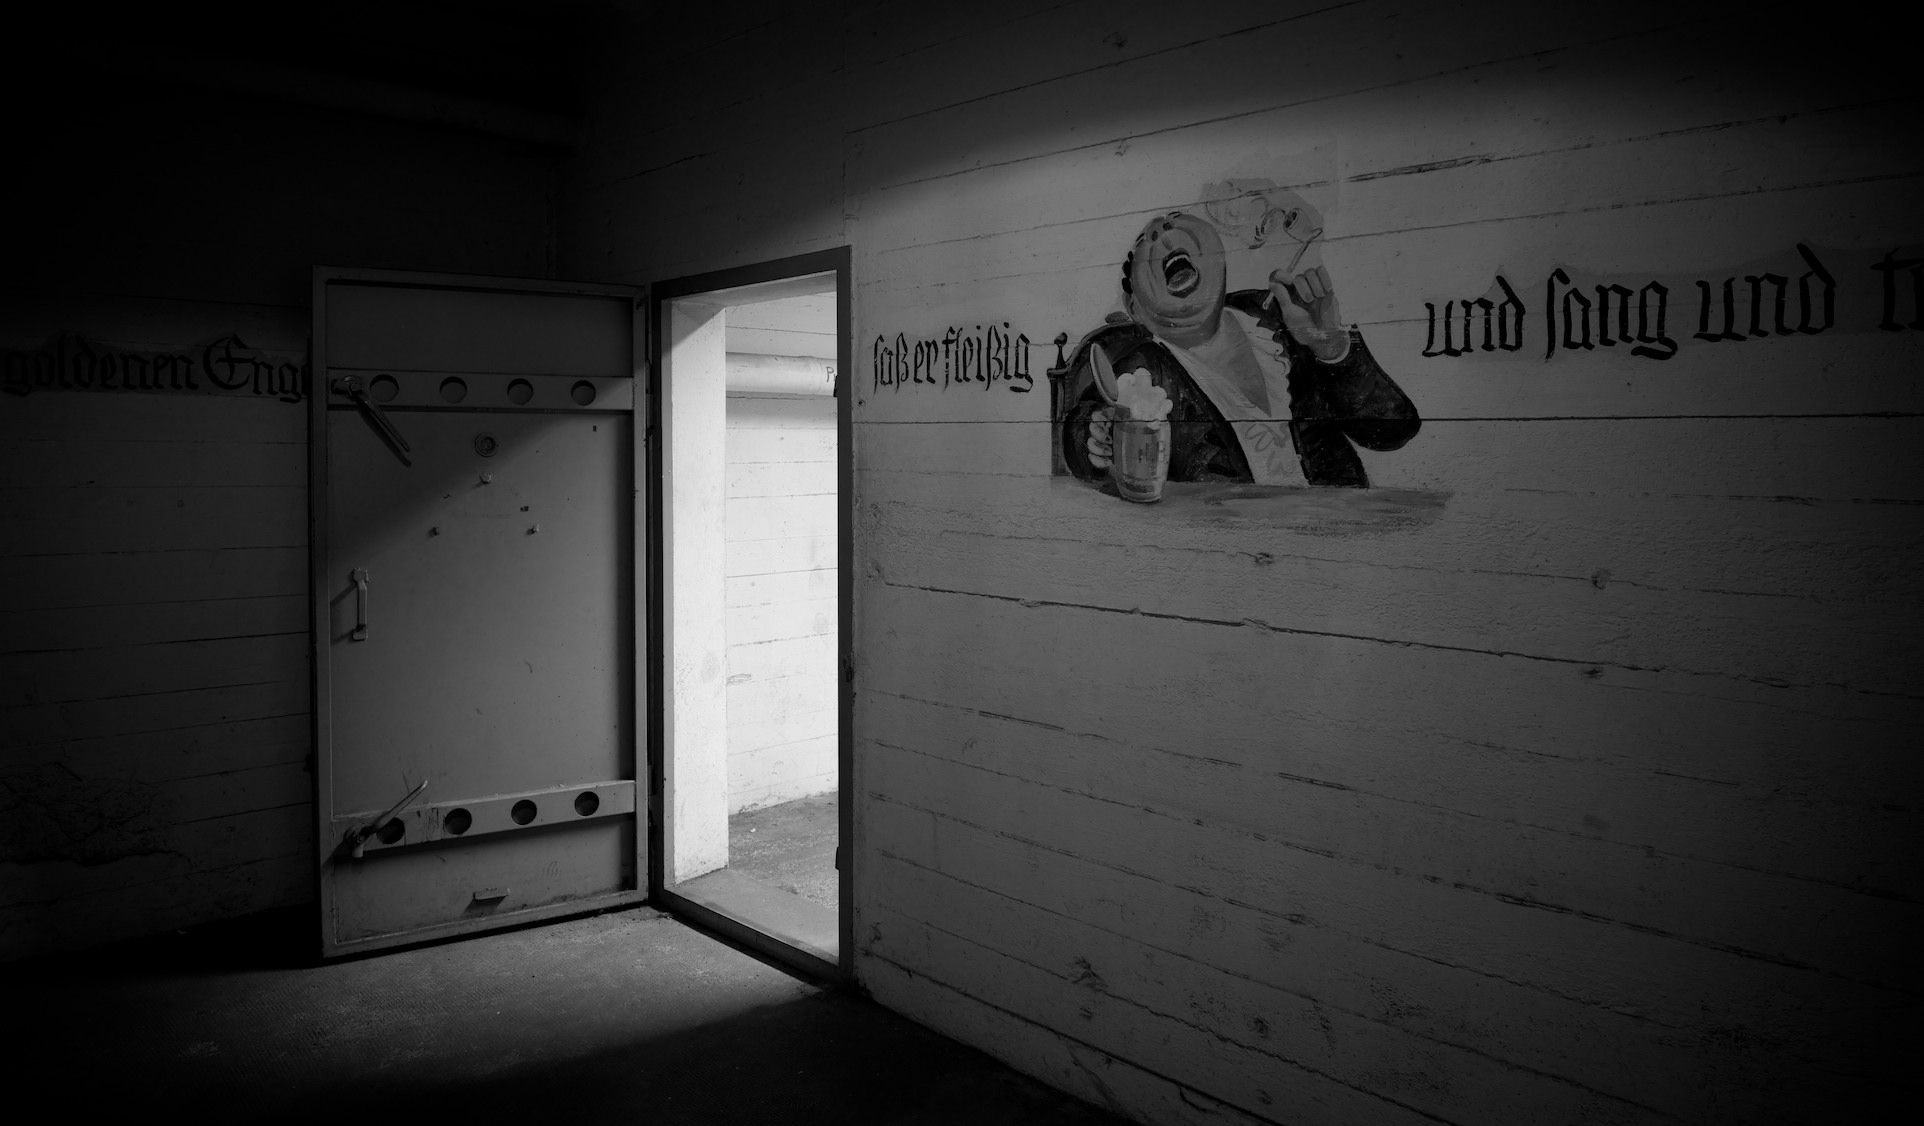 Black and white image of light coming into a cellar through a thick steel door, illuminating an illustration of Wilhelm Busch character Hieronymus with beer mug